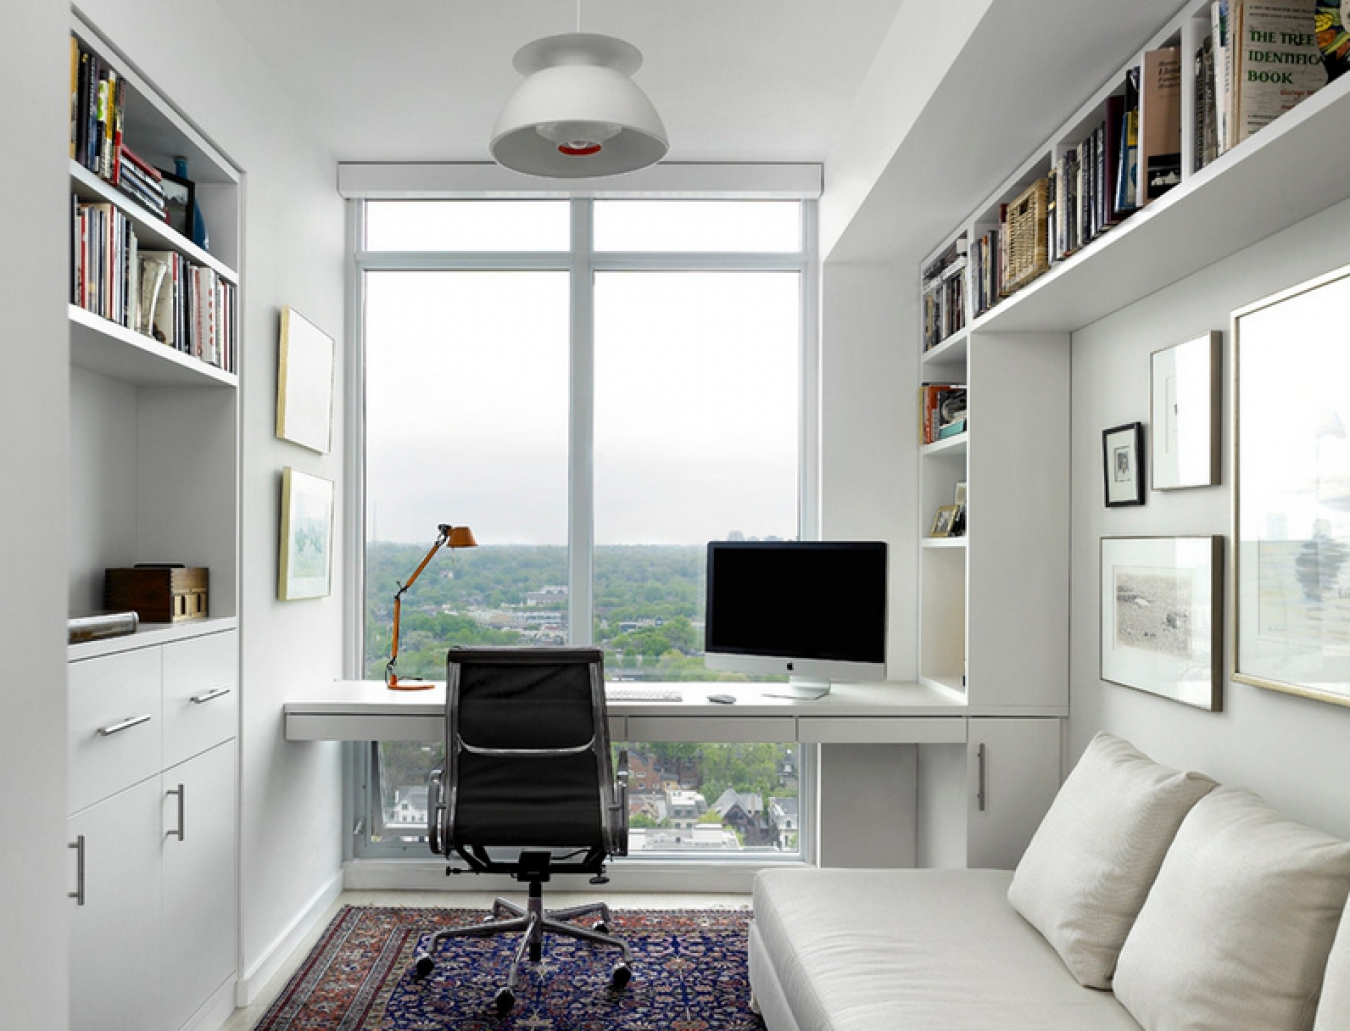 Small Space Ideas for the Bedroom and Home Office HGTV ...